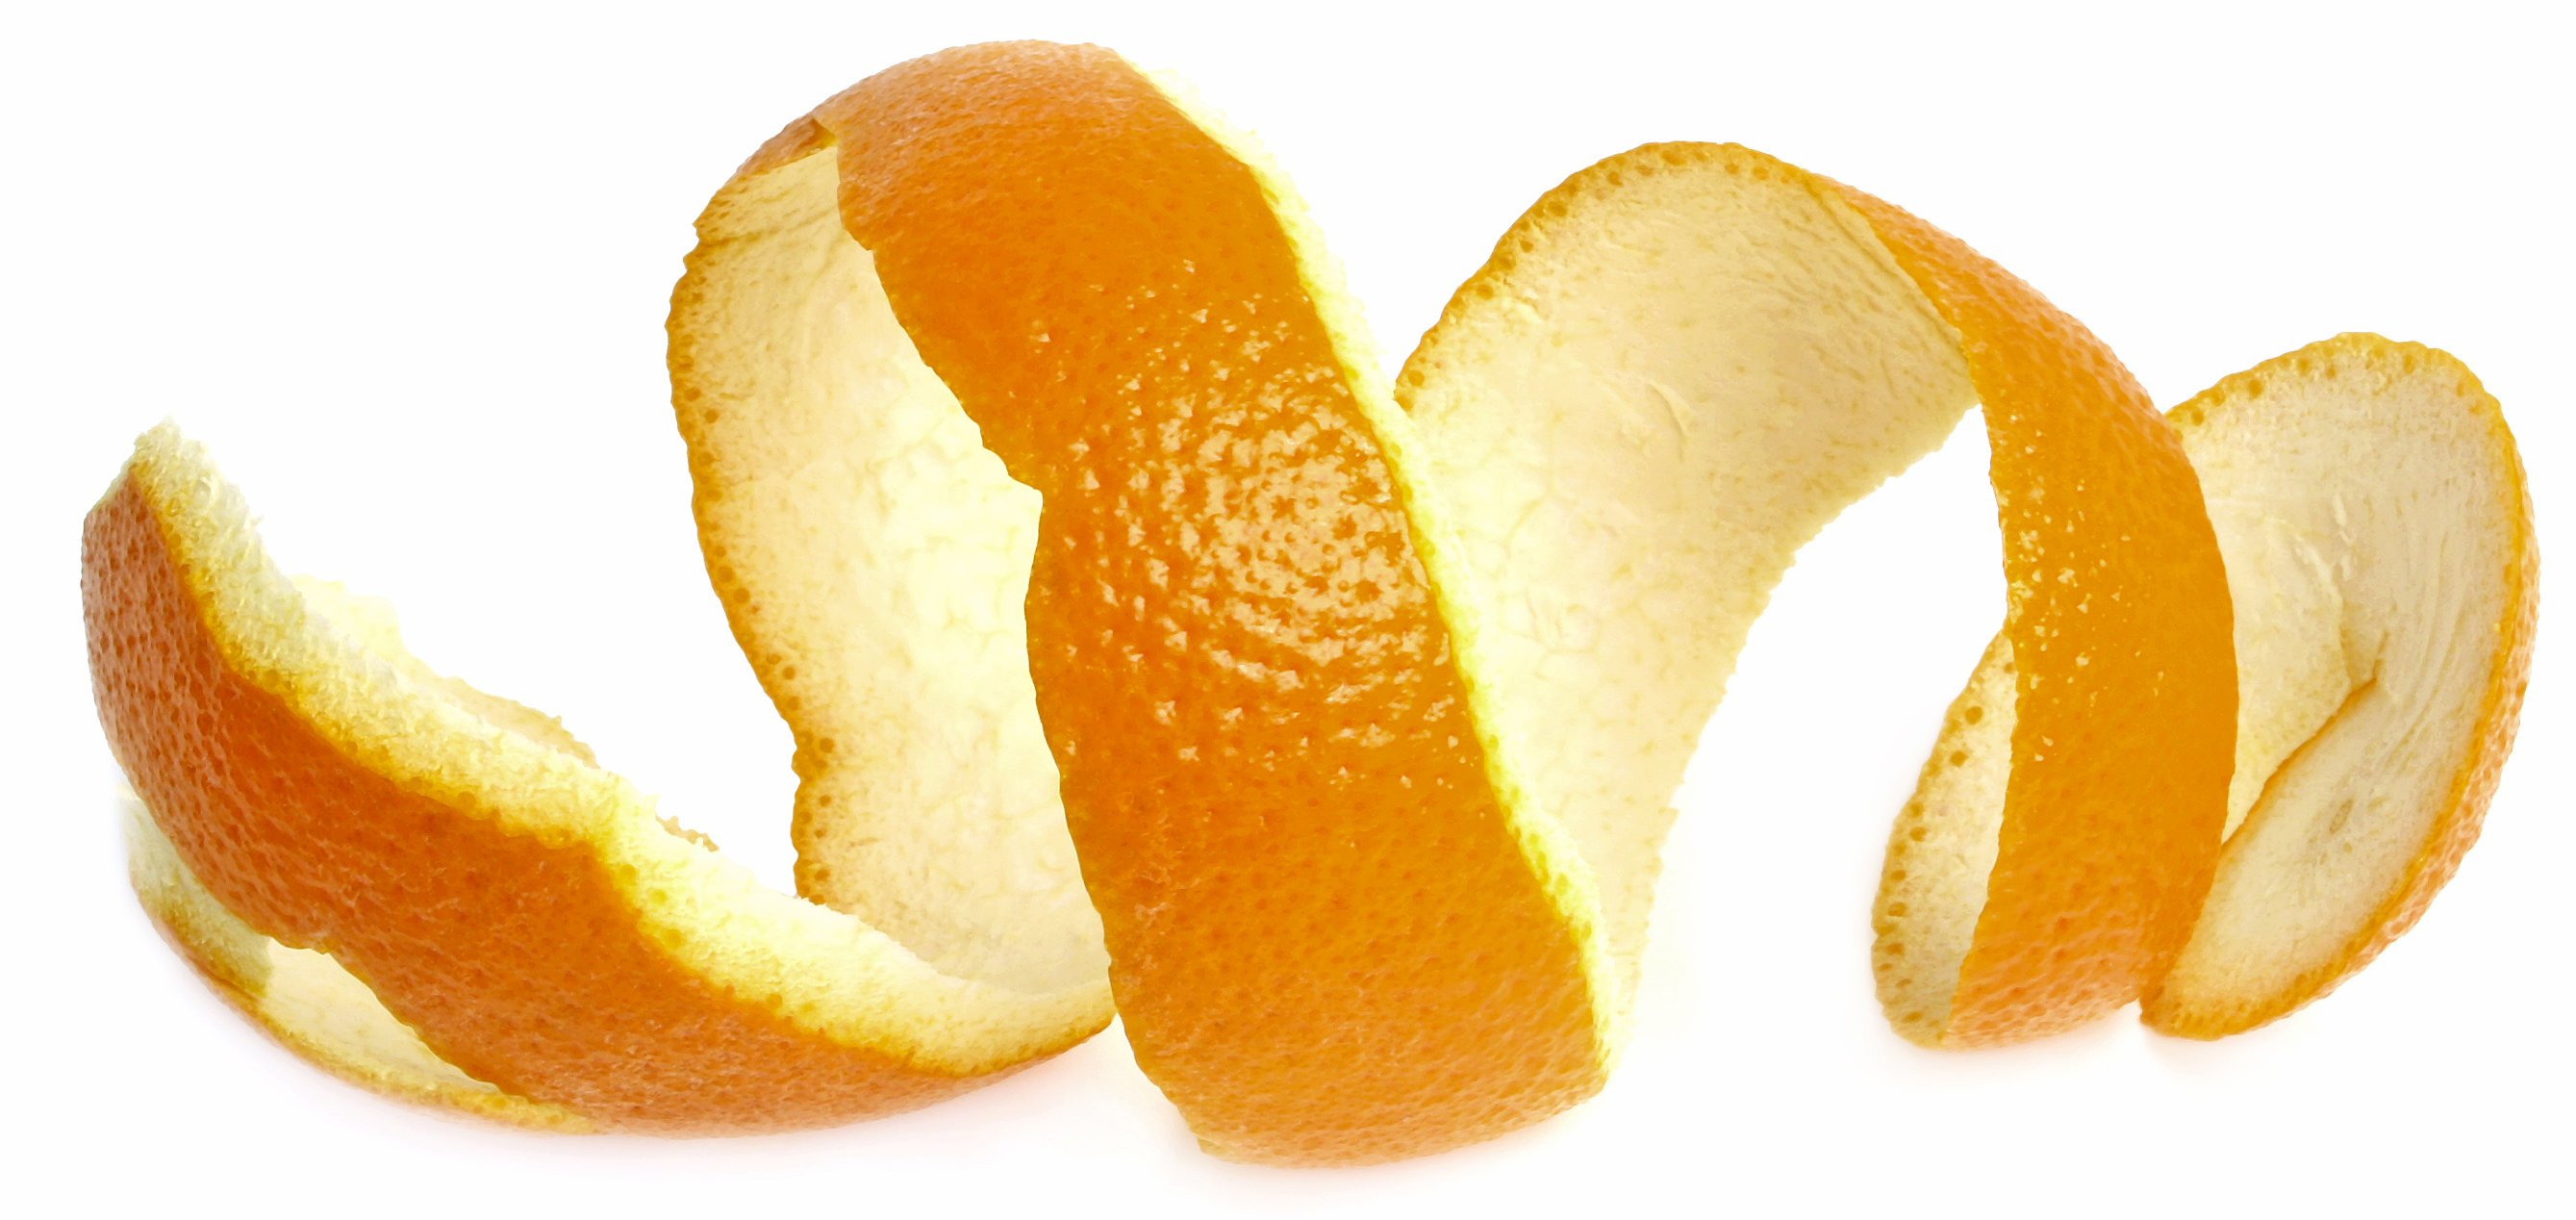 8 amazing benefits of Orange Peels